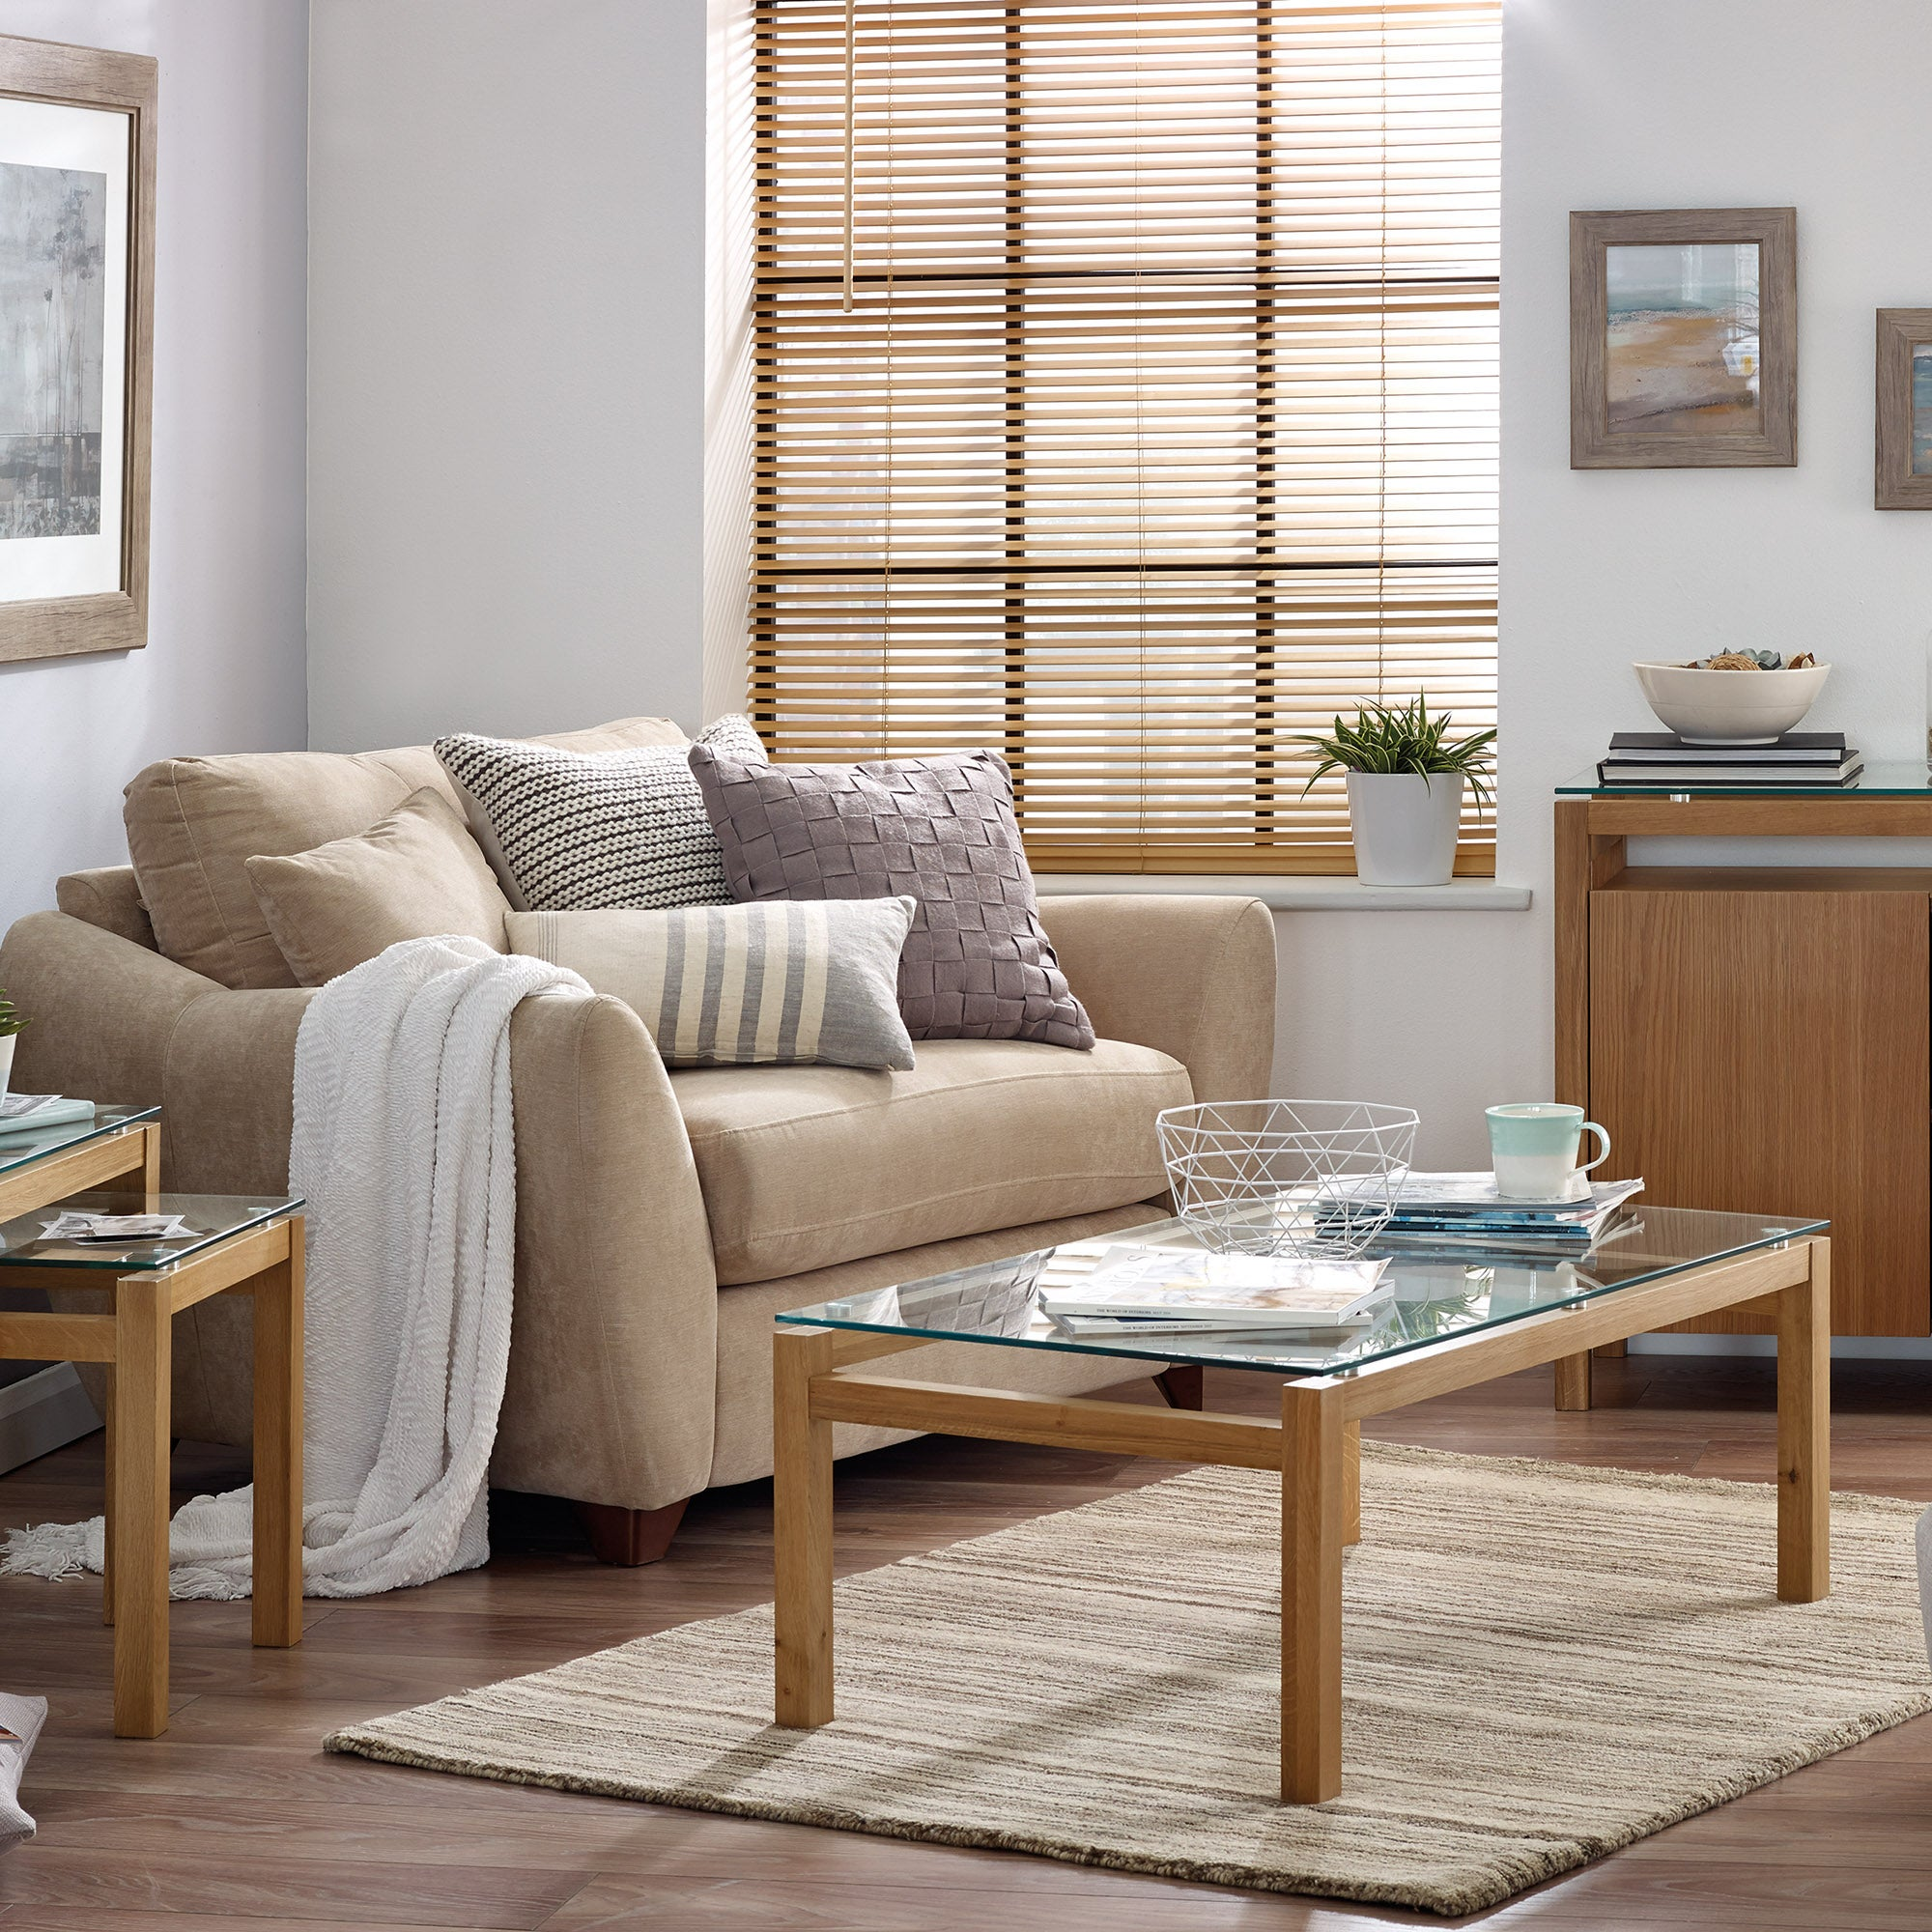 homeware furniture living room furniture living room furniture